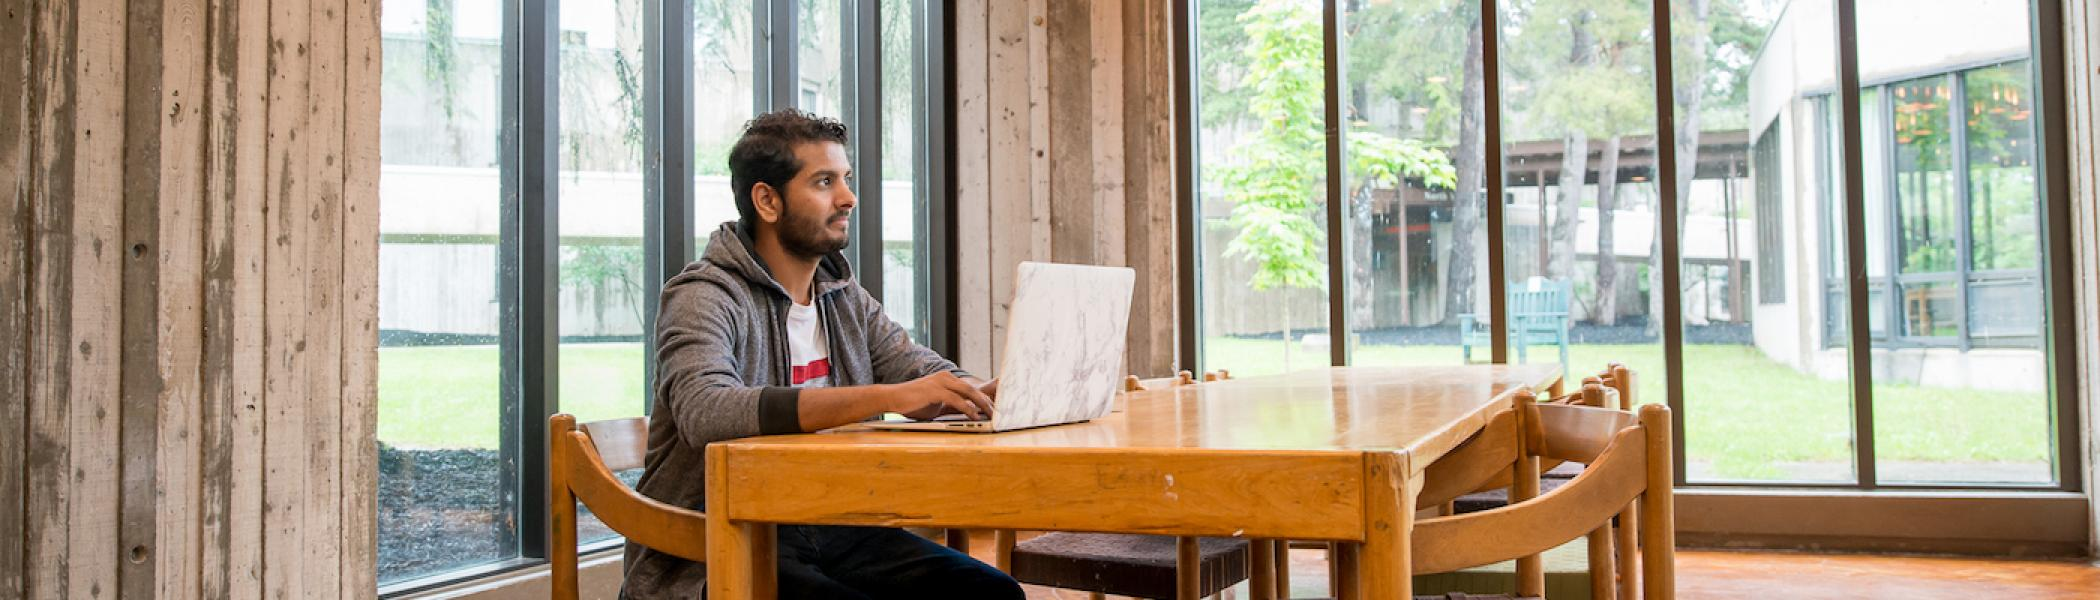 Student applying online to graduate studies at Trent University.